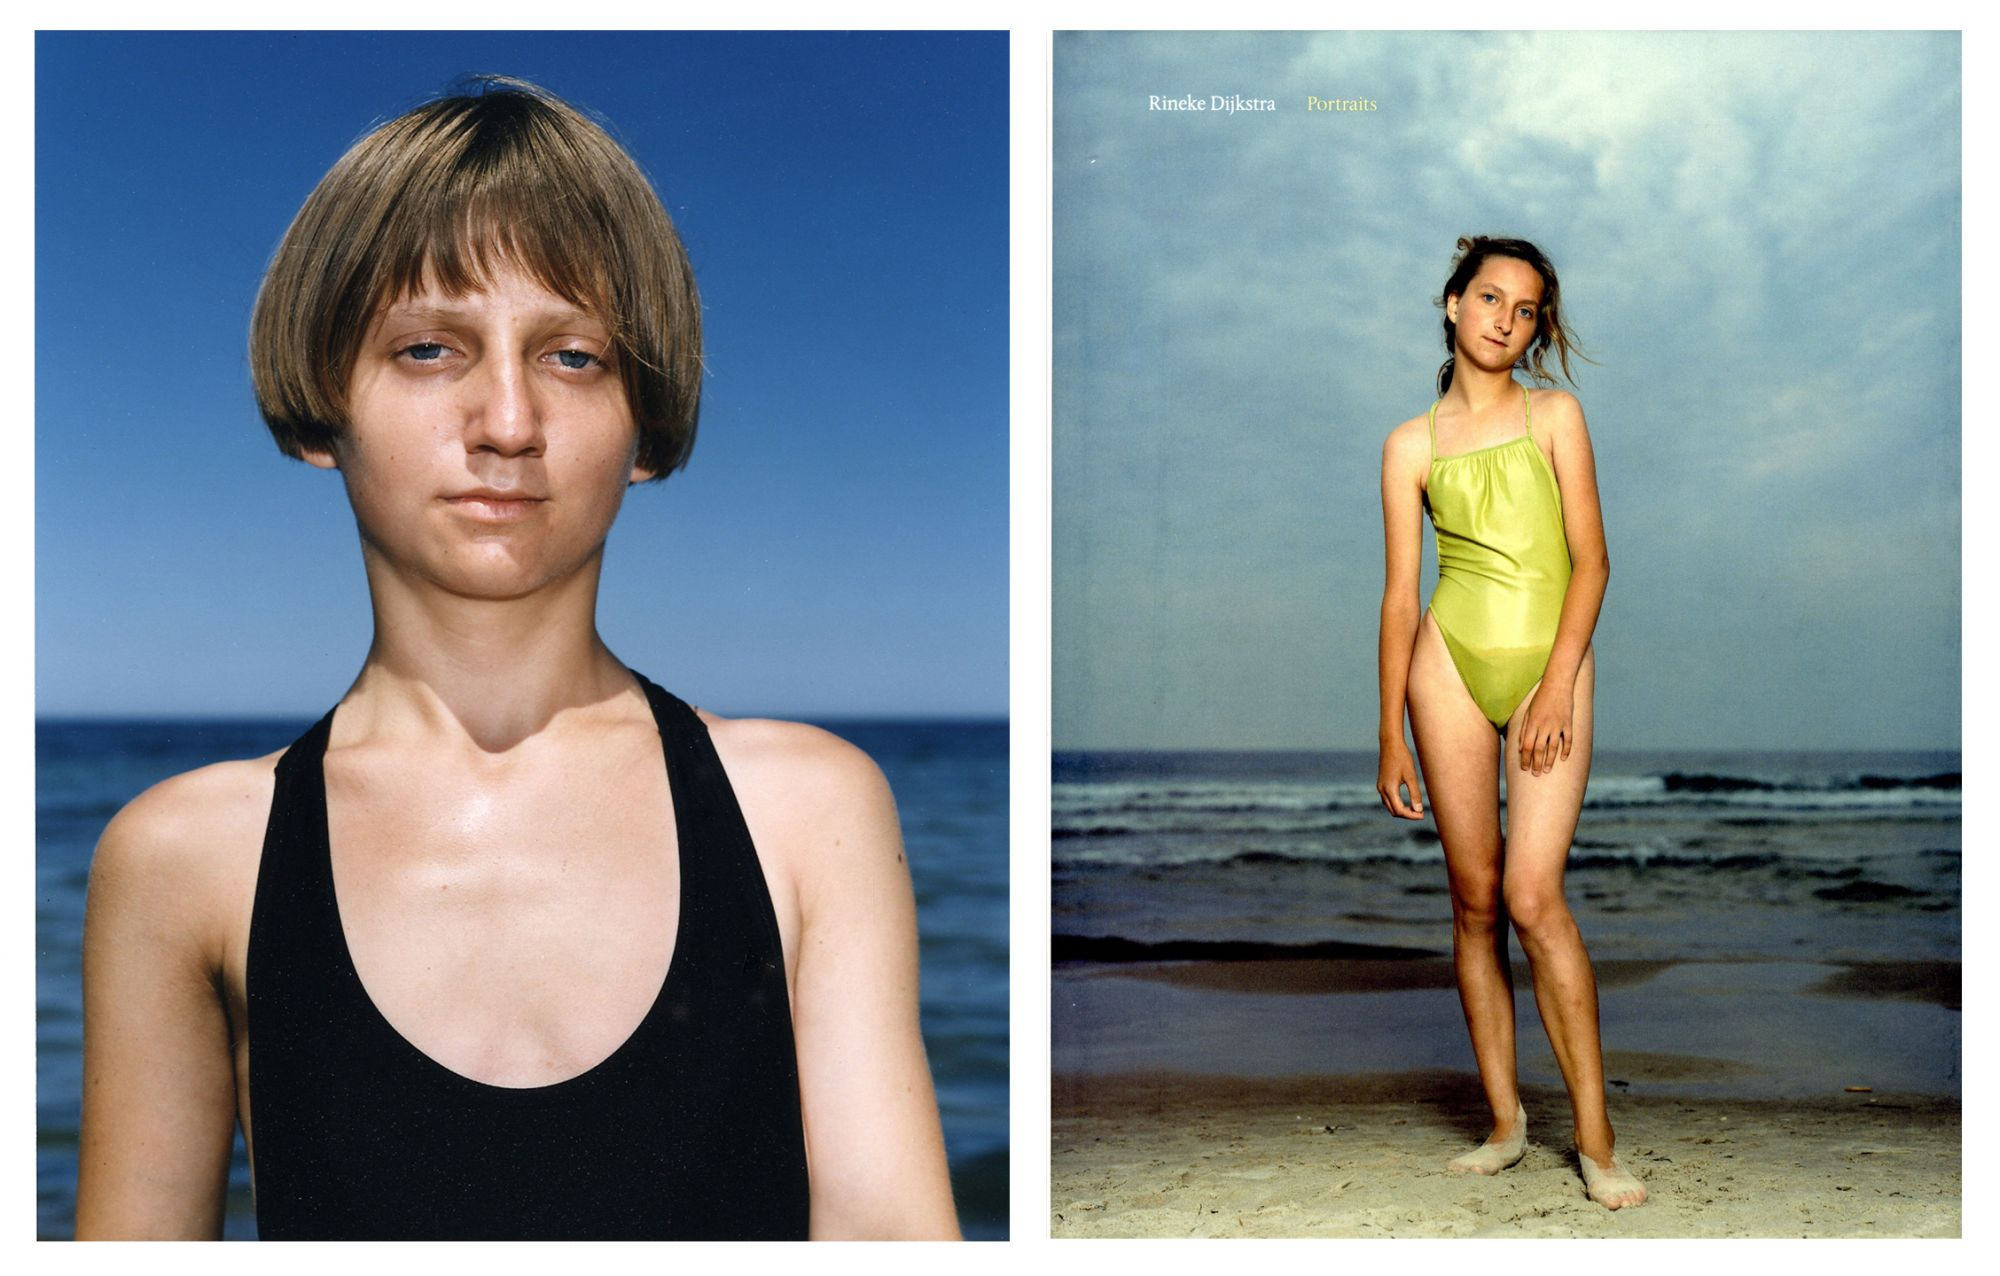 Rineke Dijkstra: Portraits, Limited Edition (with Print)